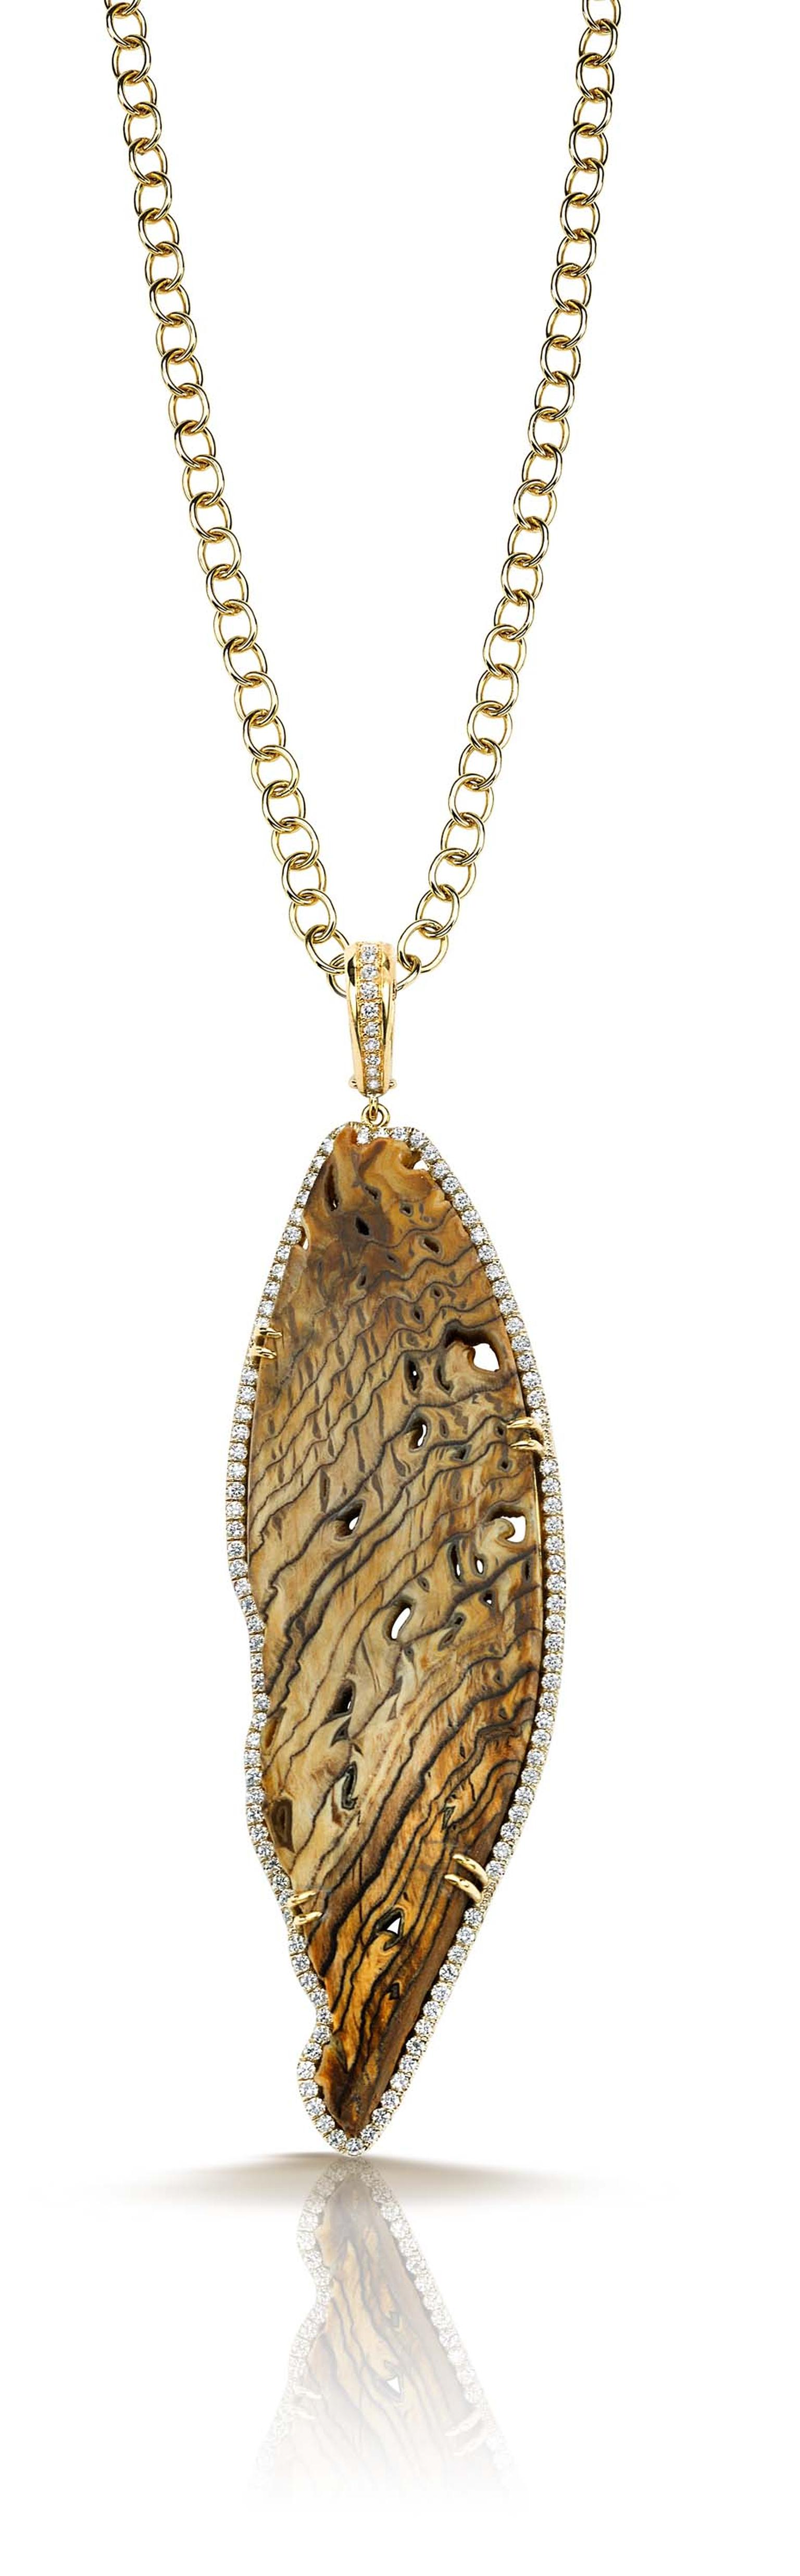 Pamela Huizenga gold pendant with a fossilized Sequoia center stone and a diamond pavé frame ($14,000).